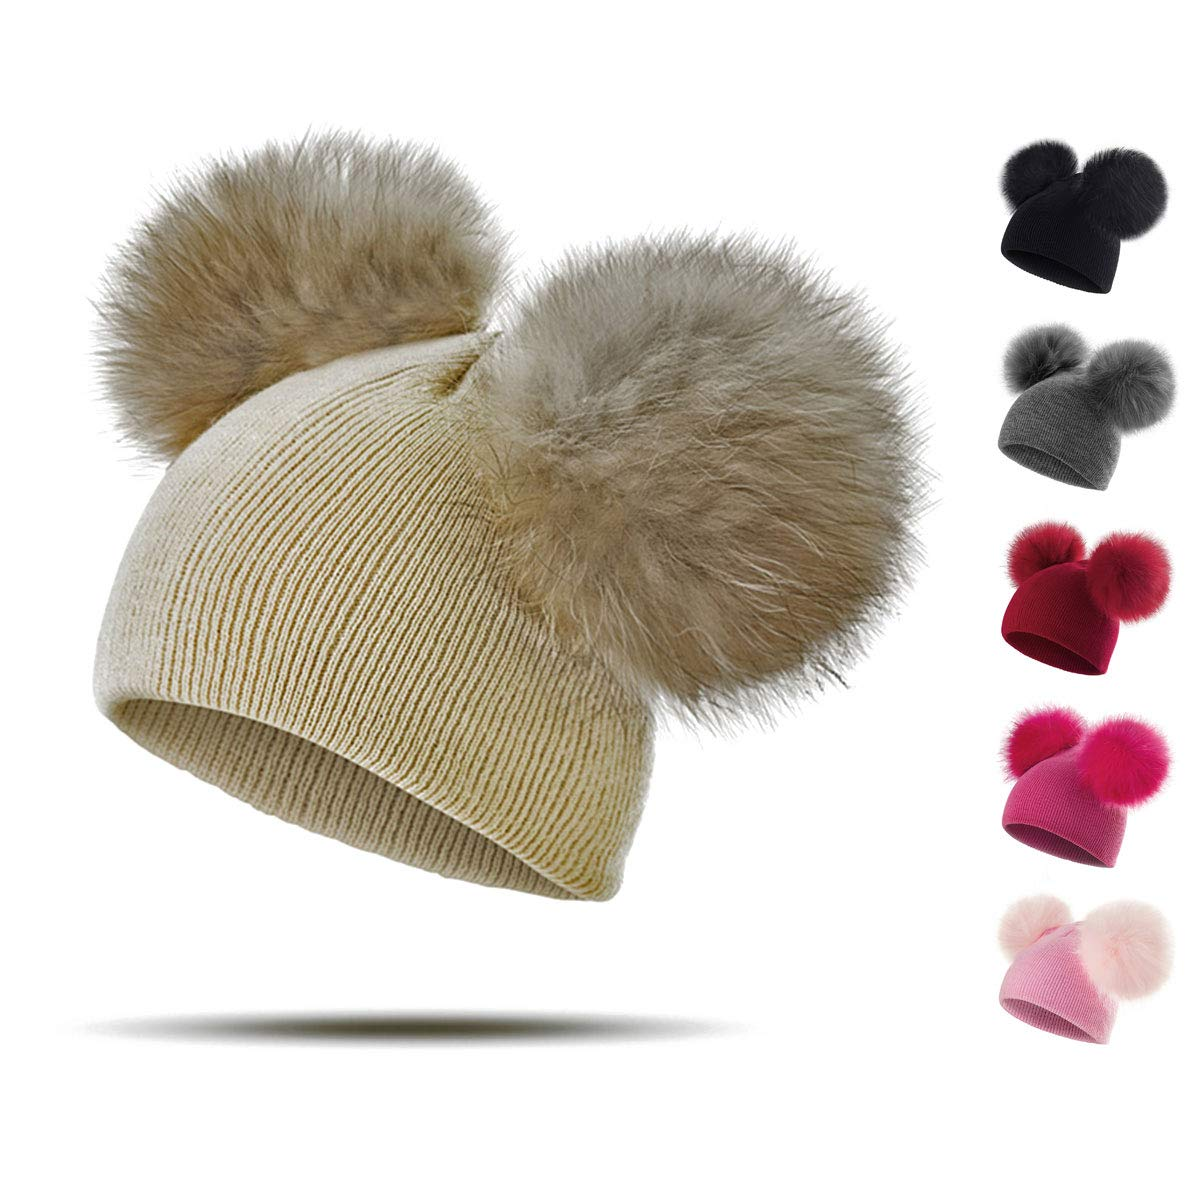 f8857cfb1e8 Peng Sheng Children Baby Hat Baby Kids Toddler Warm Winter Wool Hat Beanie  Fur Pom Pom Hat Baby Boys Girls 1-3Y  Amazon.co.uk  Clothing